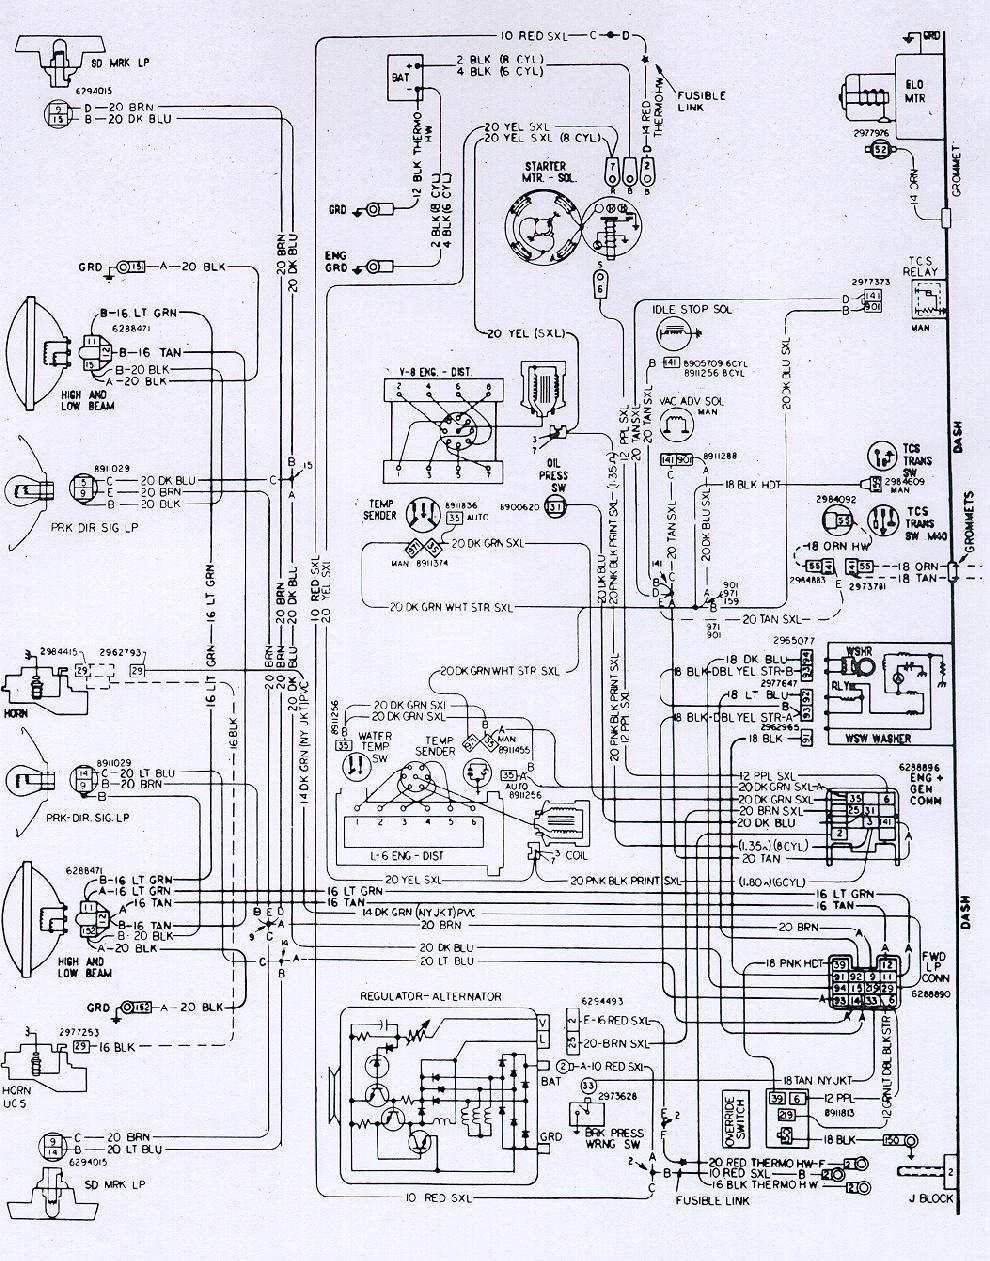 medium resolution of camaro wiring electrical information 1981 camaro wiring diagram 1981 camaro wiring diagram